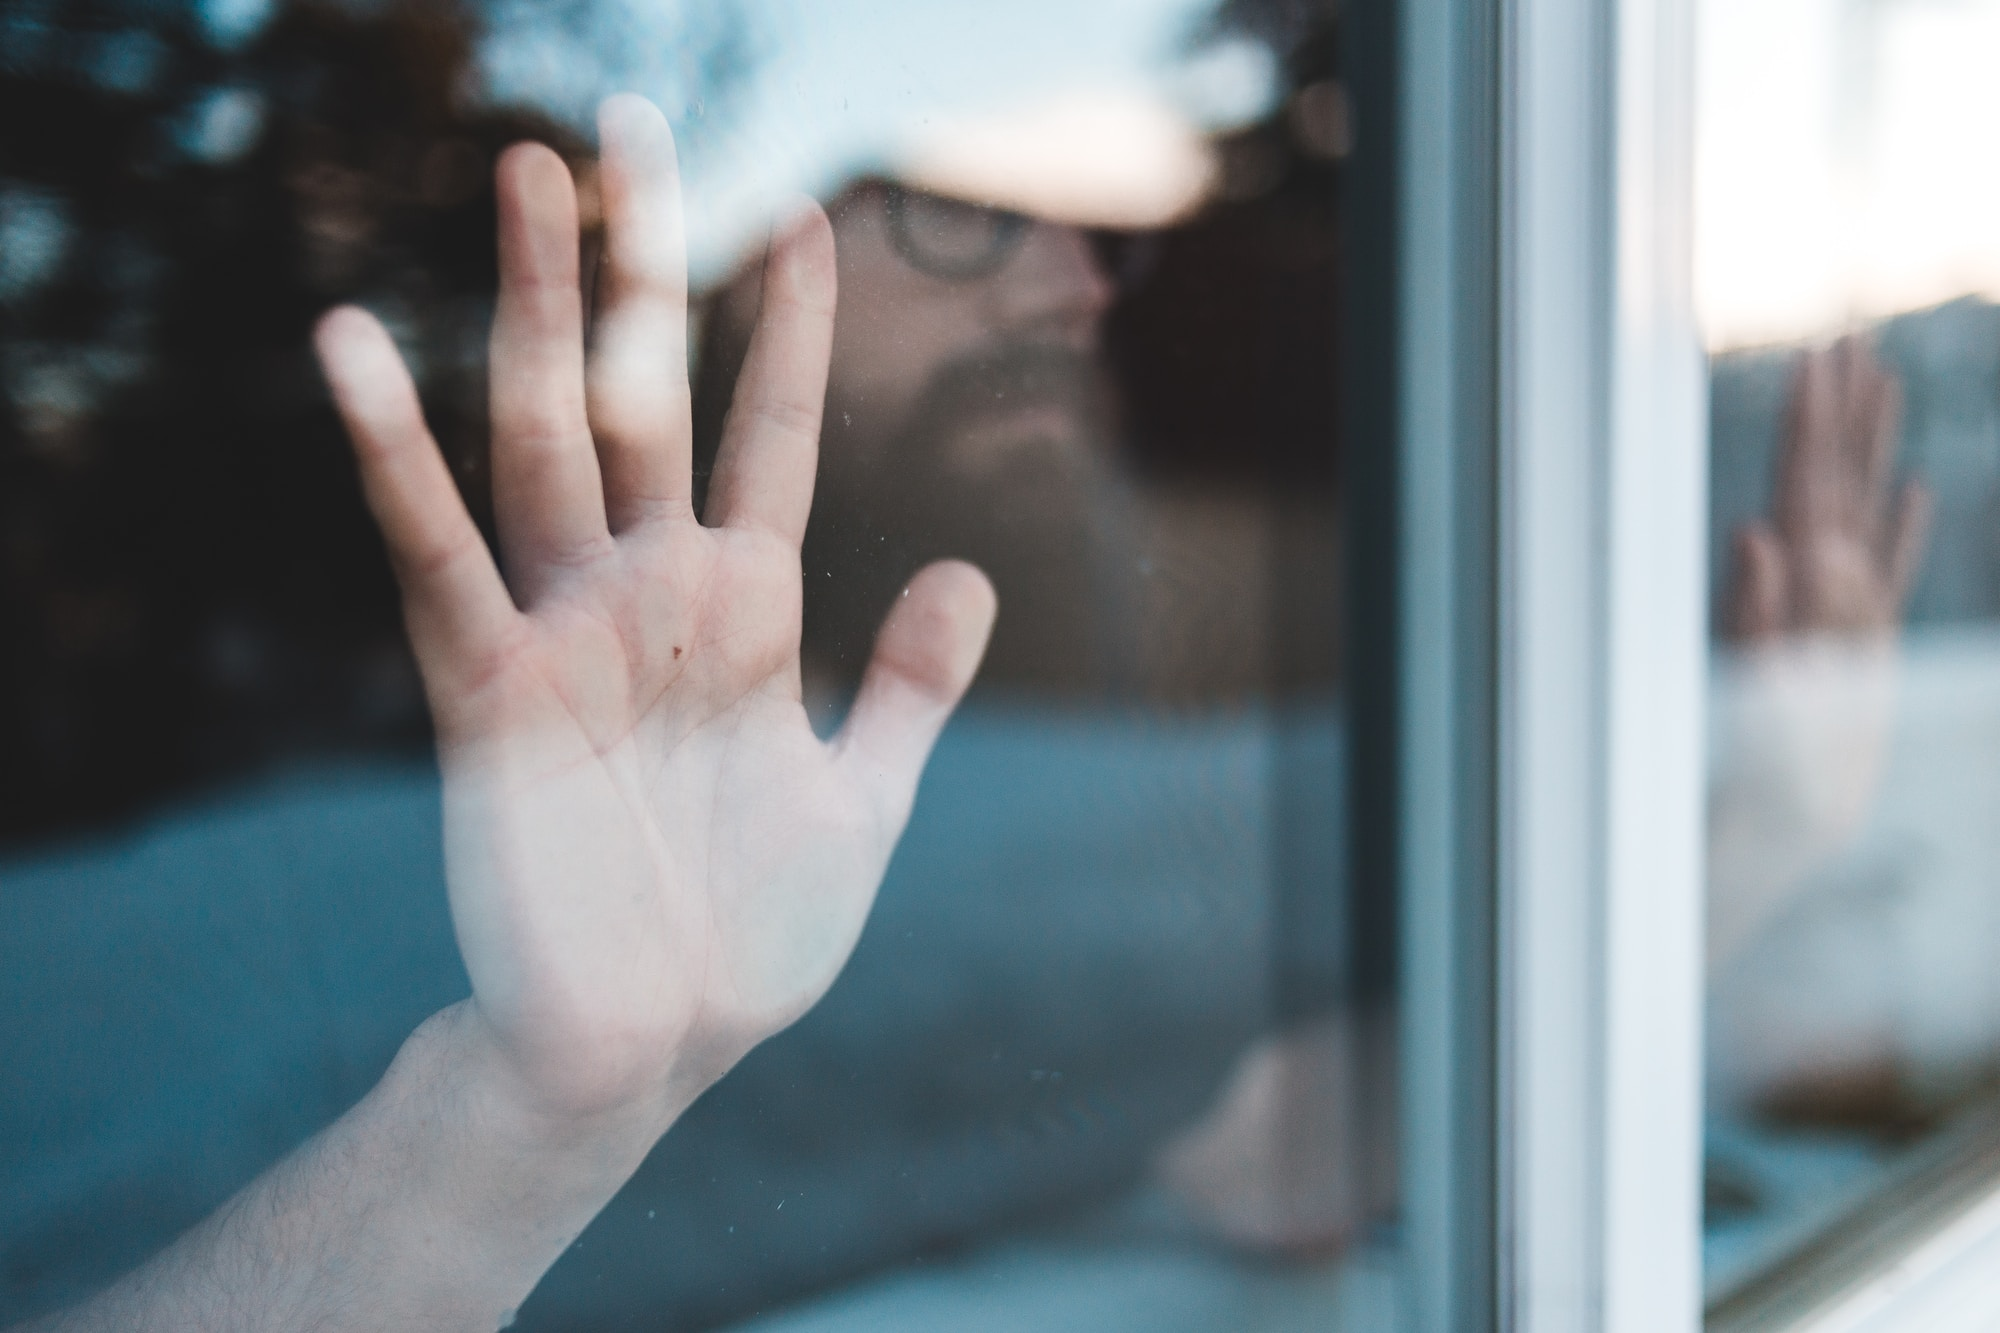 persons hand on glass window